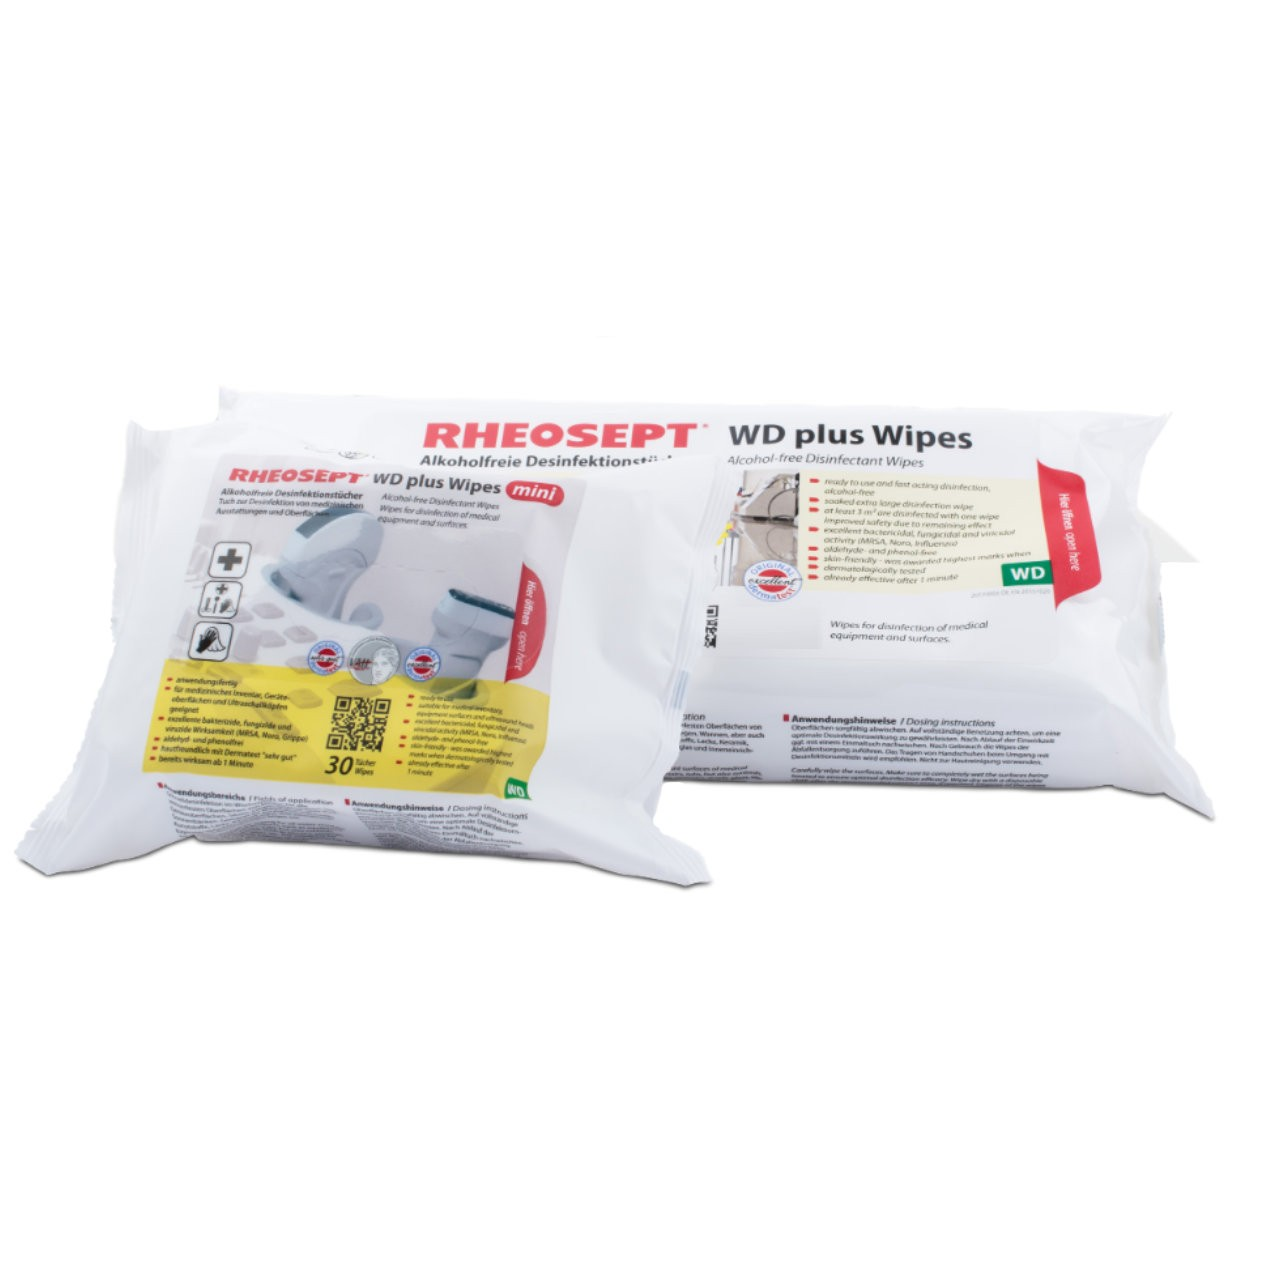 RHEOSEPT-WD-plus Wipes mini